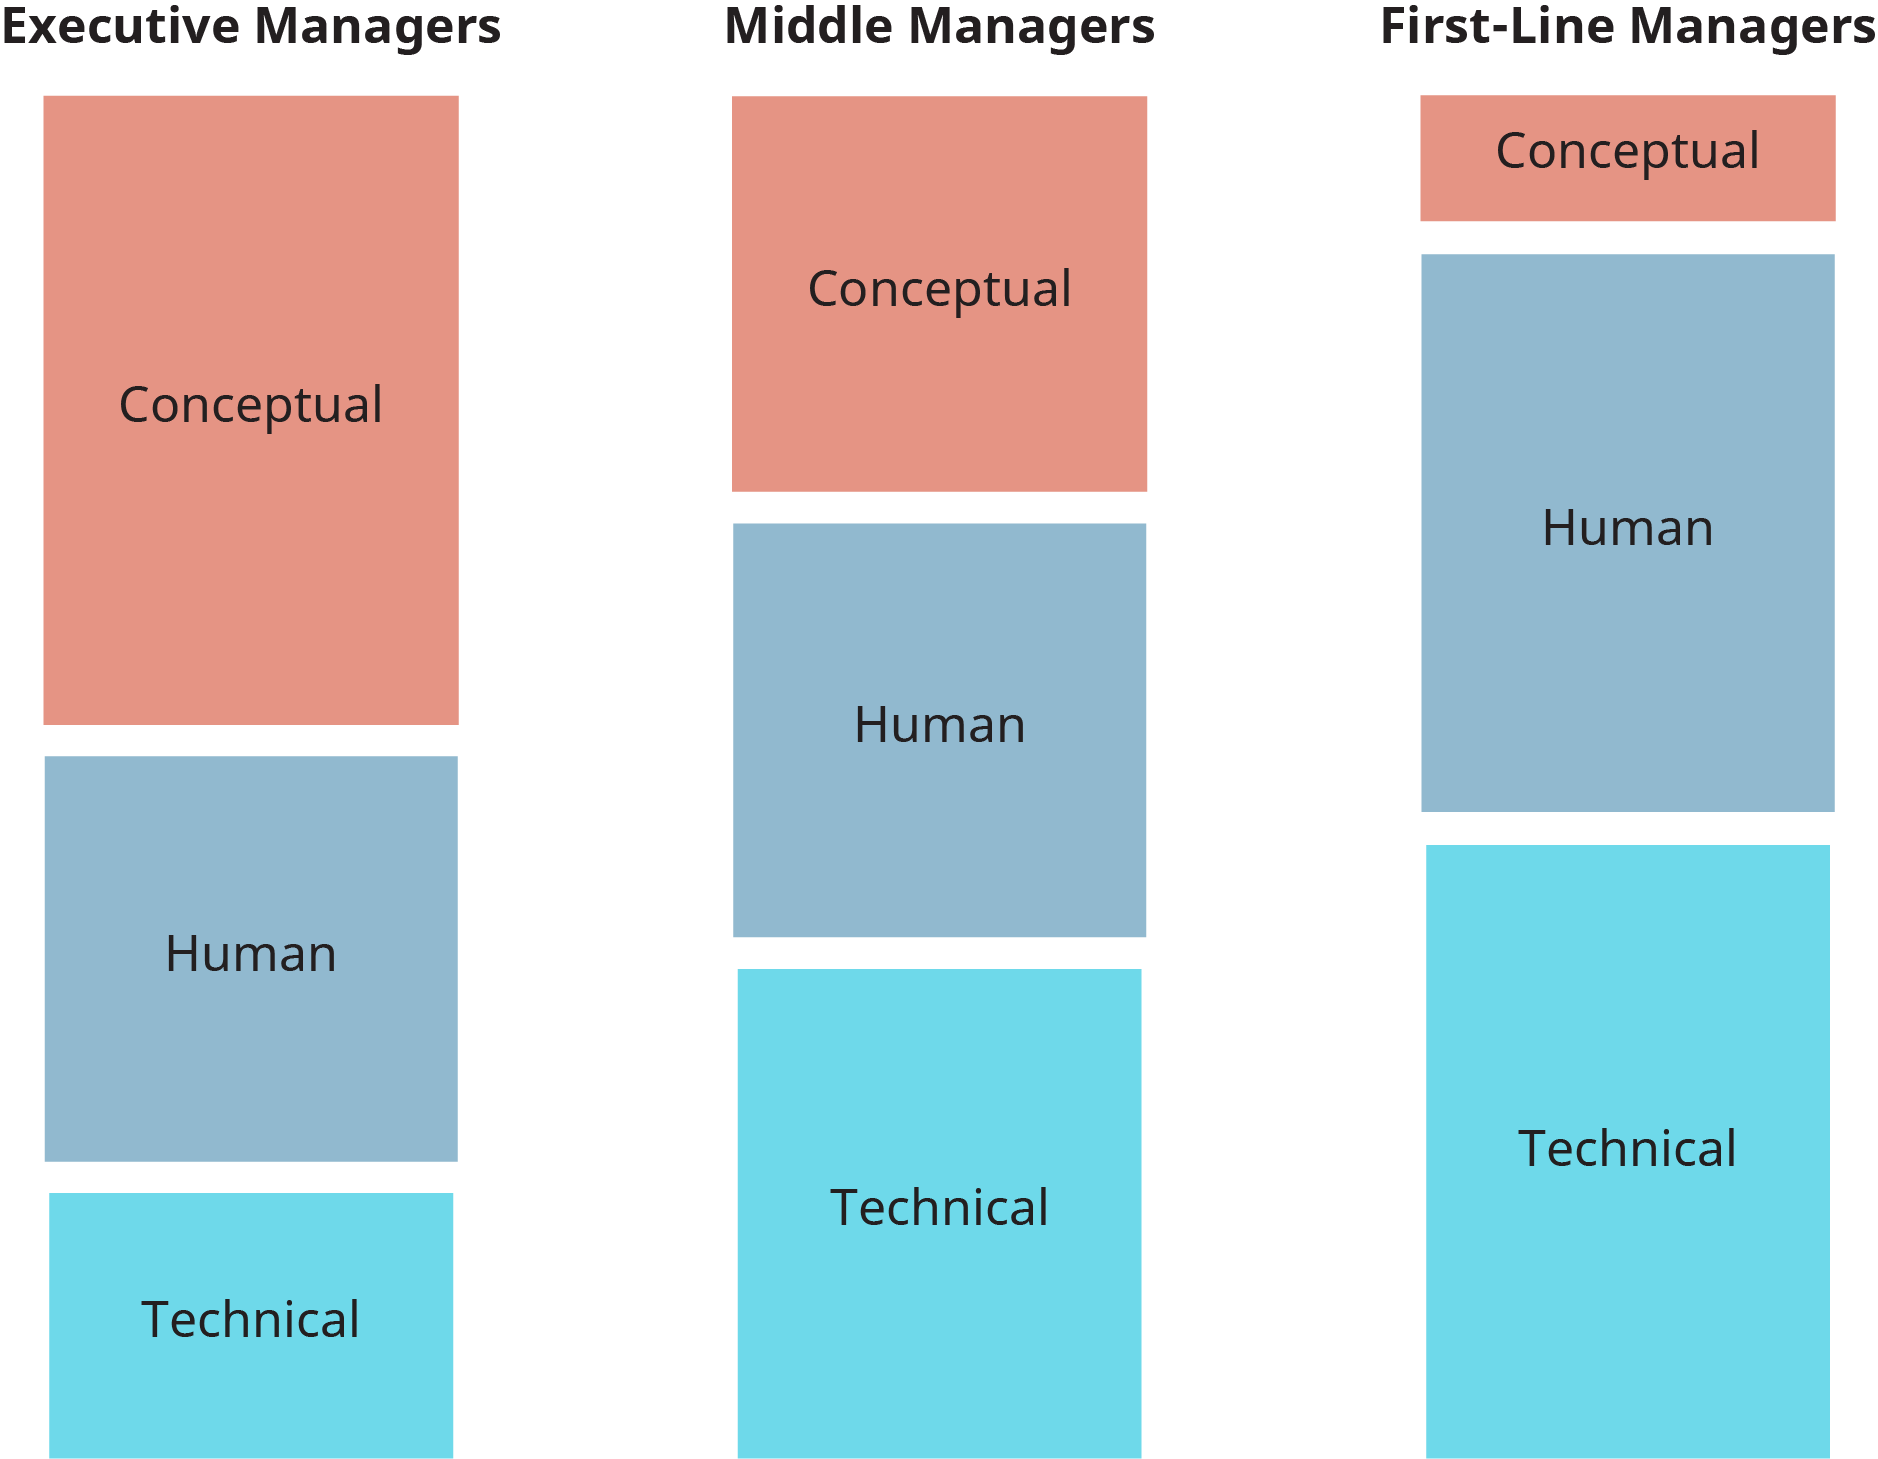 A diagram illustrates the difference in skills required for successful management at the top three levels in the management hierarchy.